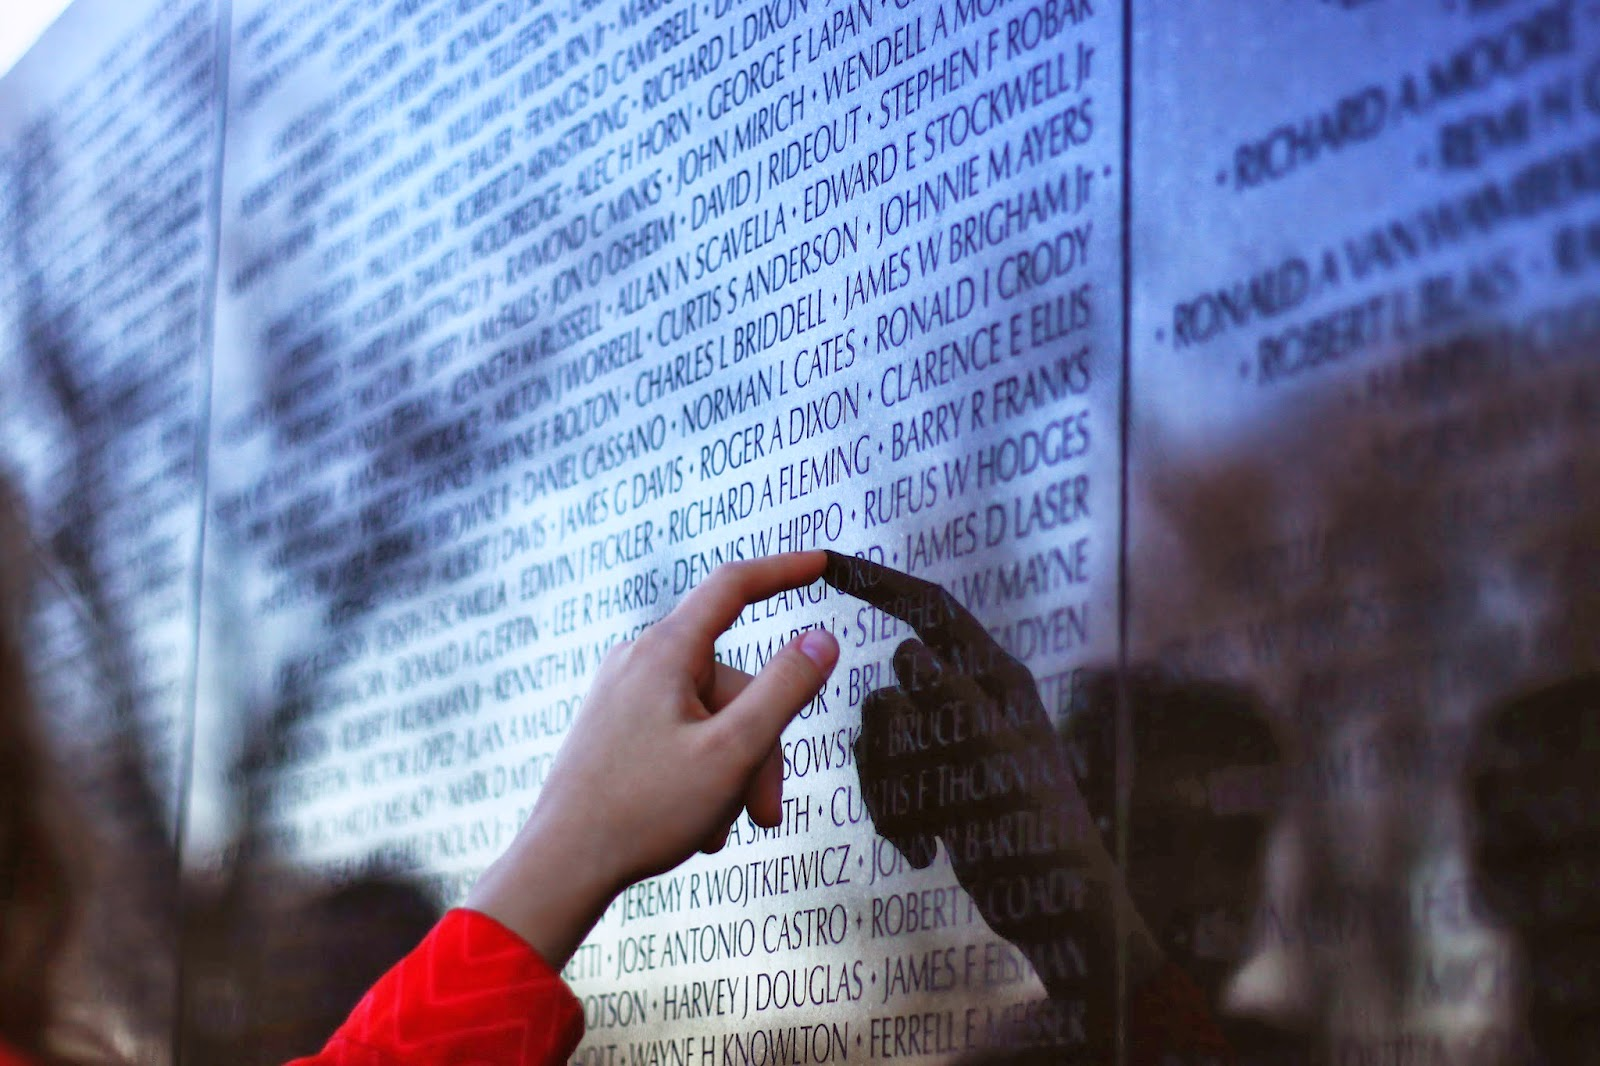 Finding a name on the Vietnam Memorial